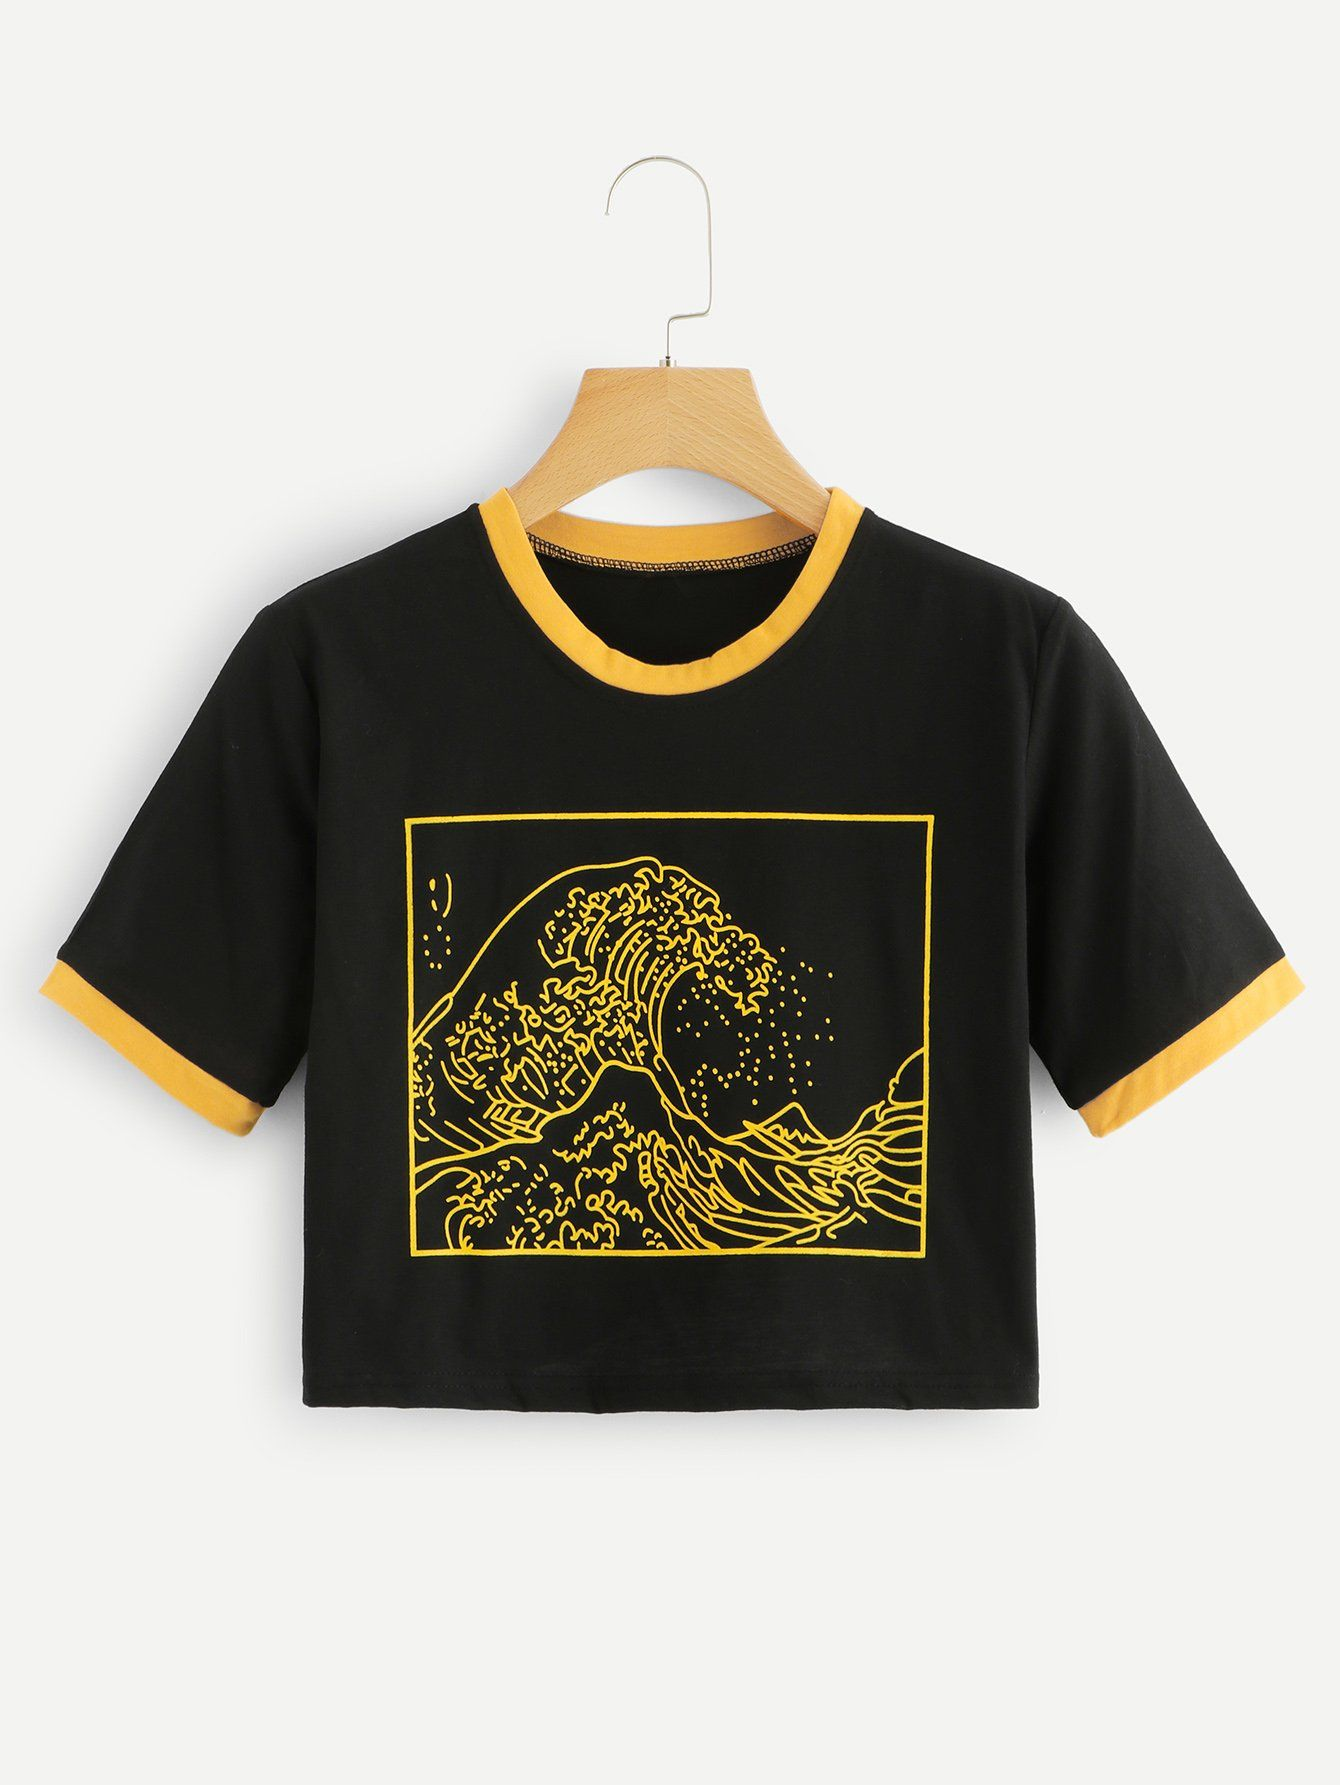 a0b119158 ... Buy Women's T-shirts at Cheap Prices. Graphic Print Ringer TeeFor  Women-romwe